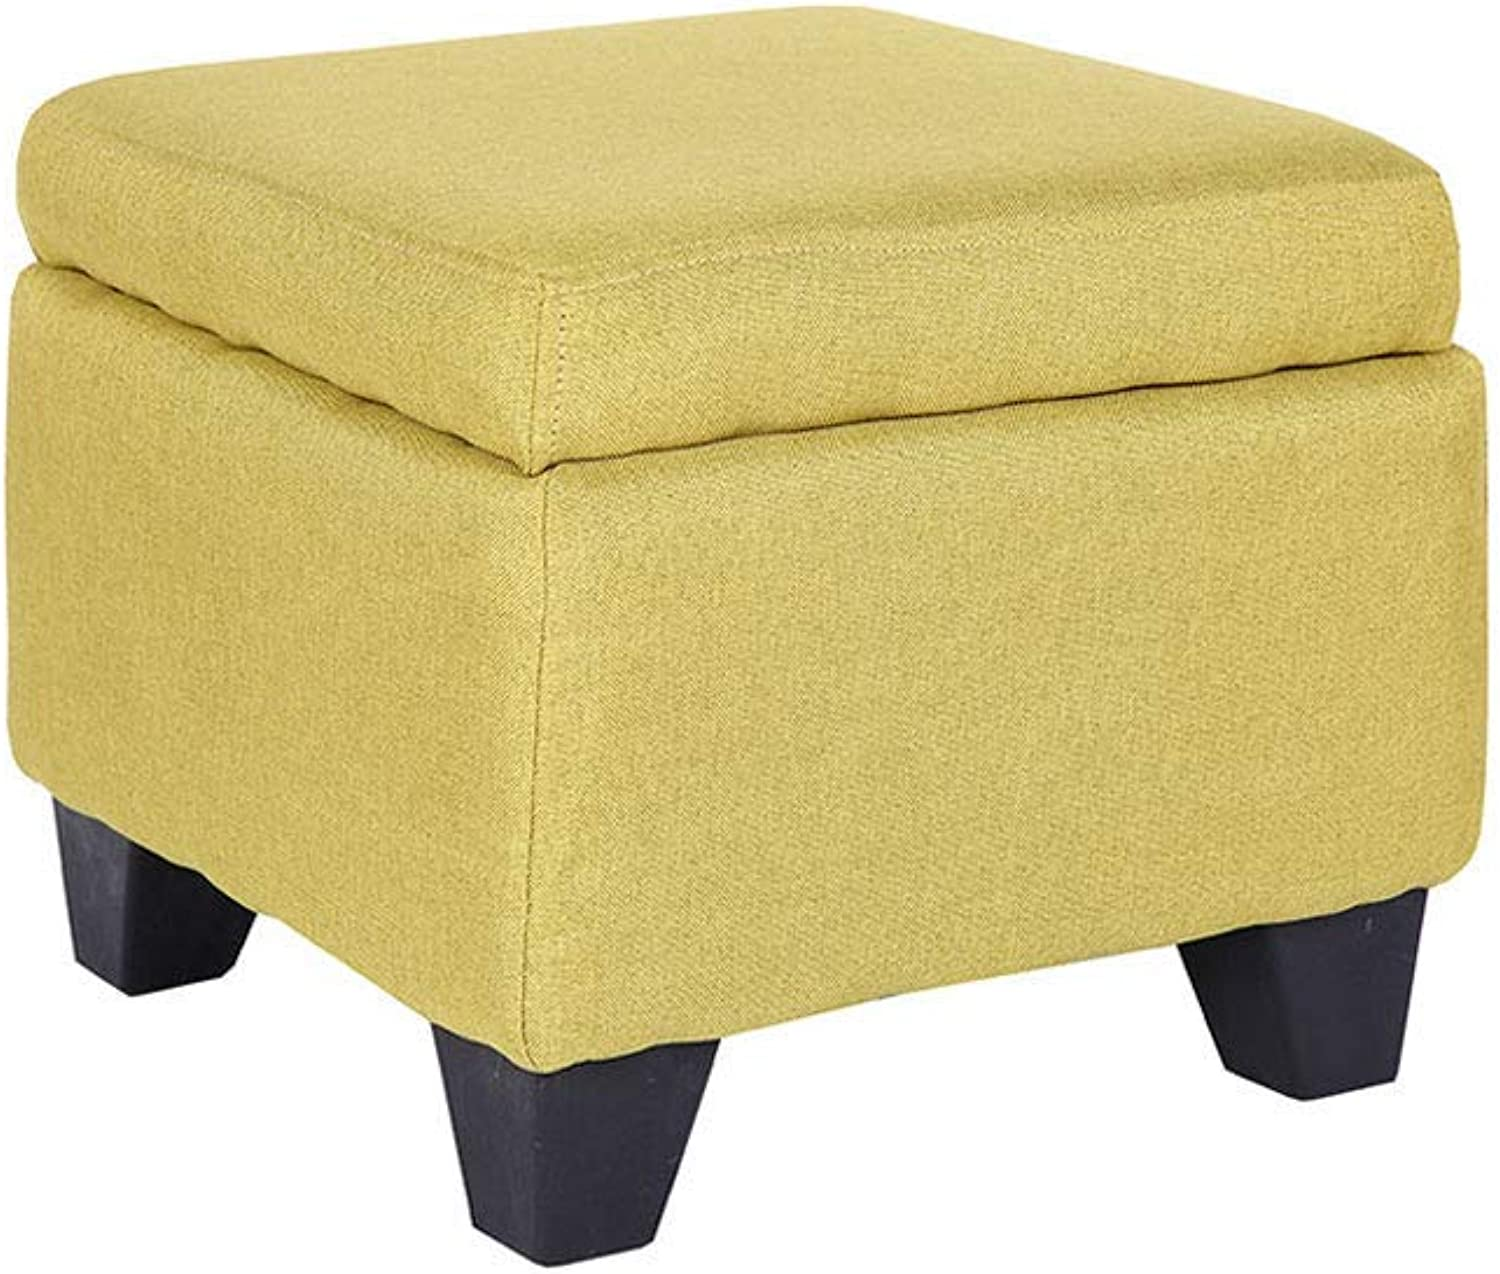 GJD Fabric Footstool, Can Accommodate Storage Stool, Home Creative Lazy Stool 40×40cm, Multi-color Selection (color   Matcha)